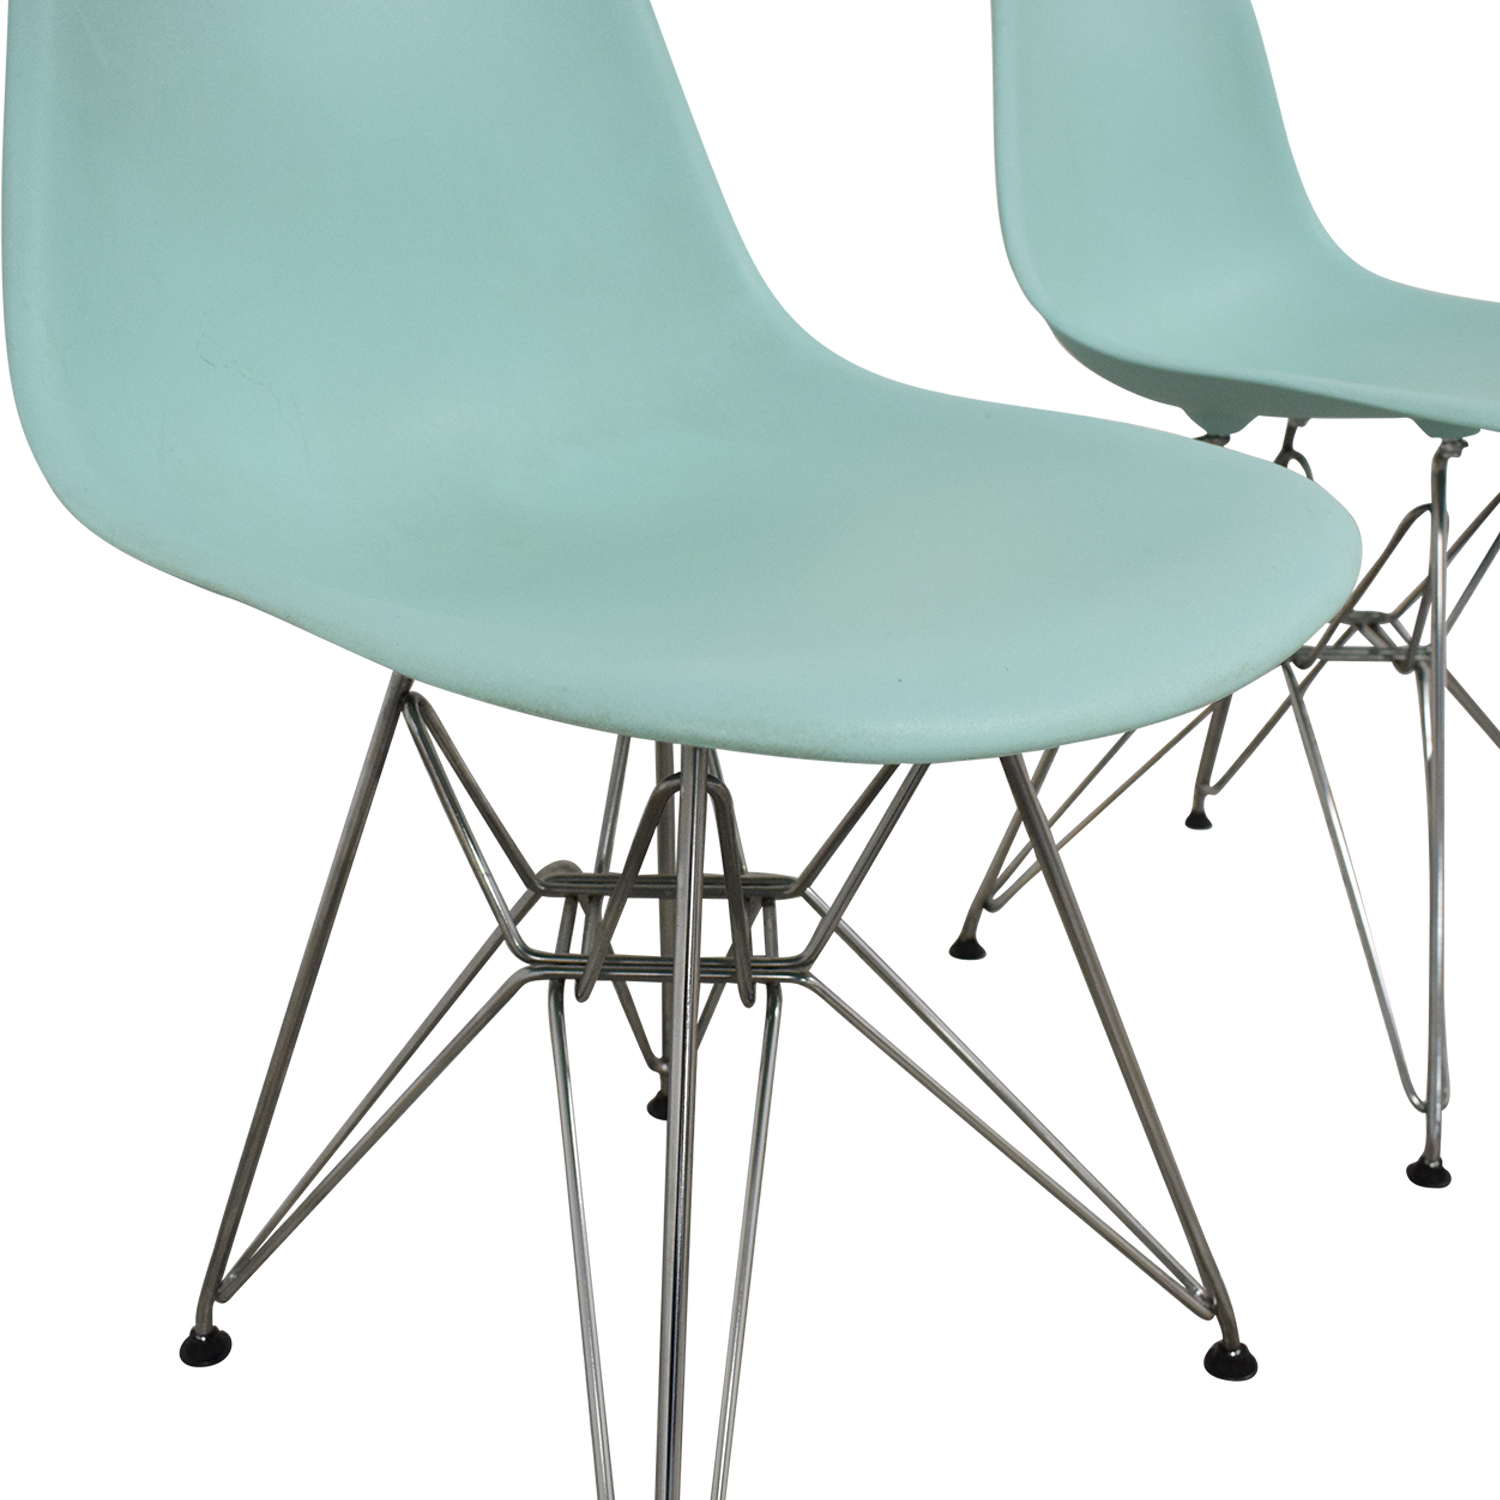 Herman Miller Herman Miller Eames Molded Plastic Side Chair with Wire Base blue